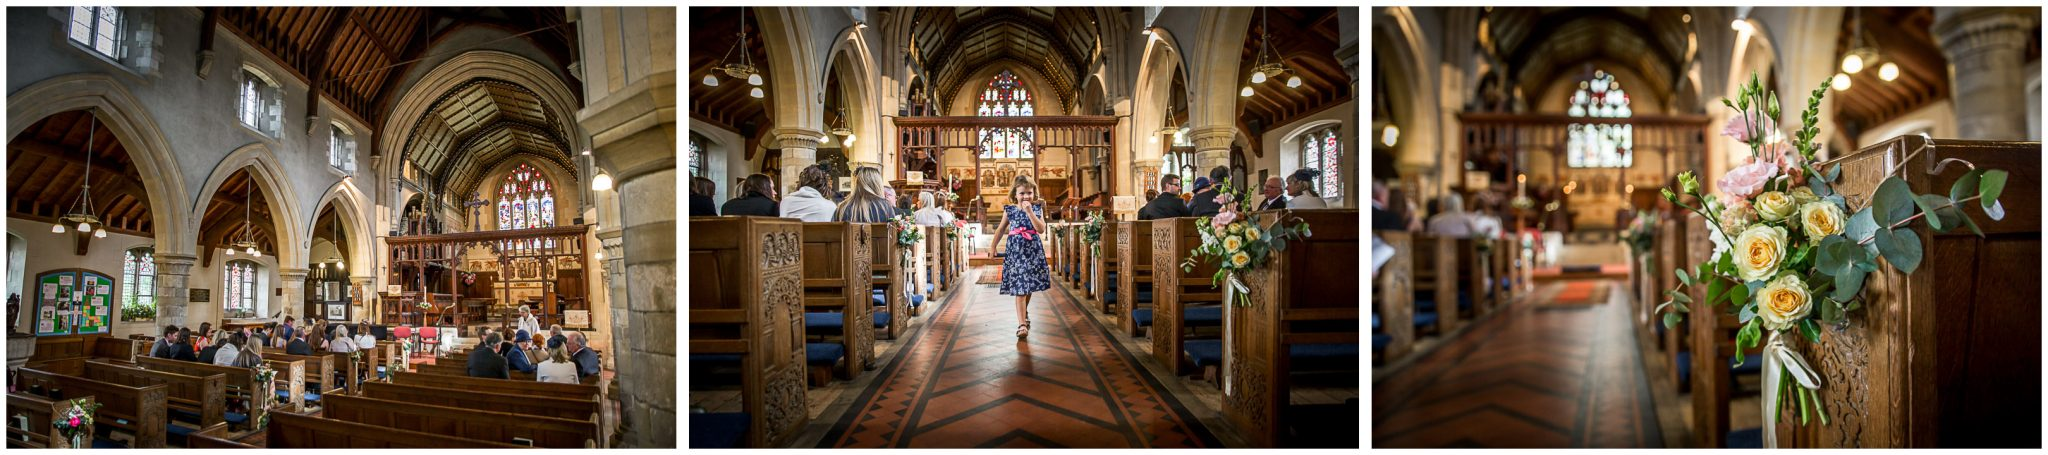 Twyford Church interior before wedding service